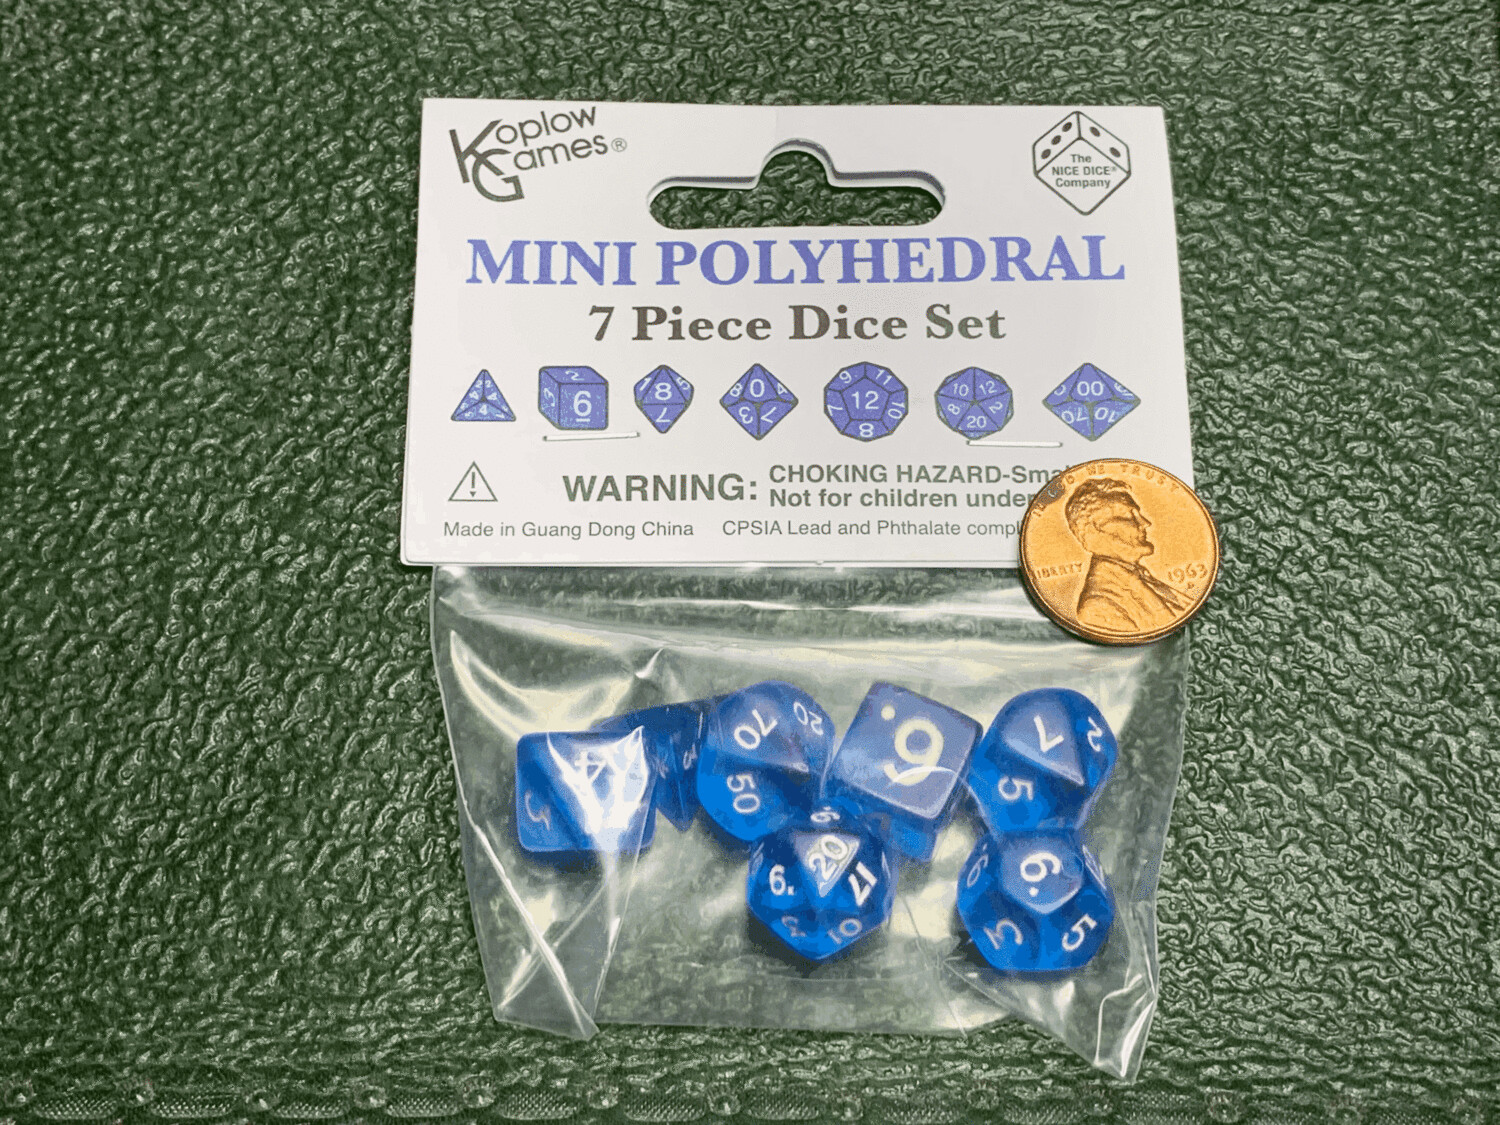 Mini Polyhedral 7 Dice Set - Transparent Blue with White